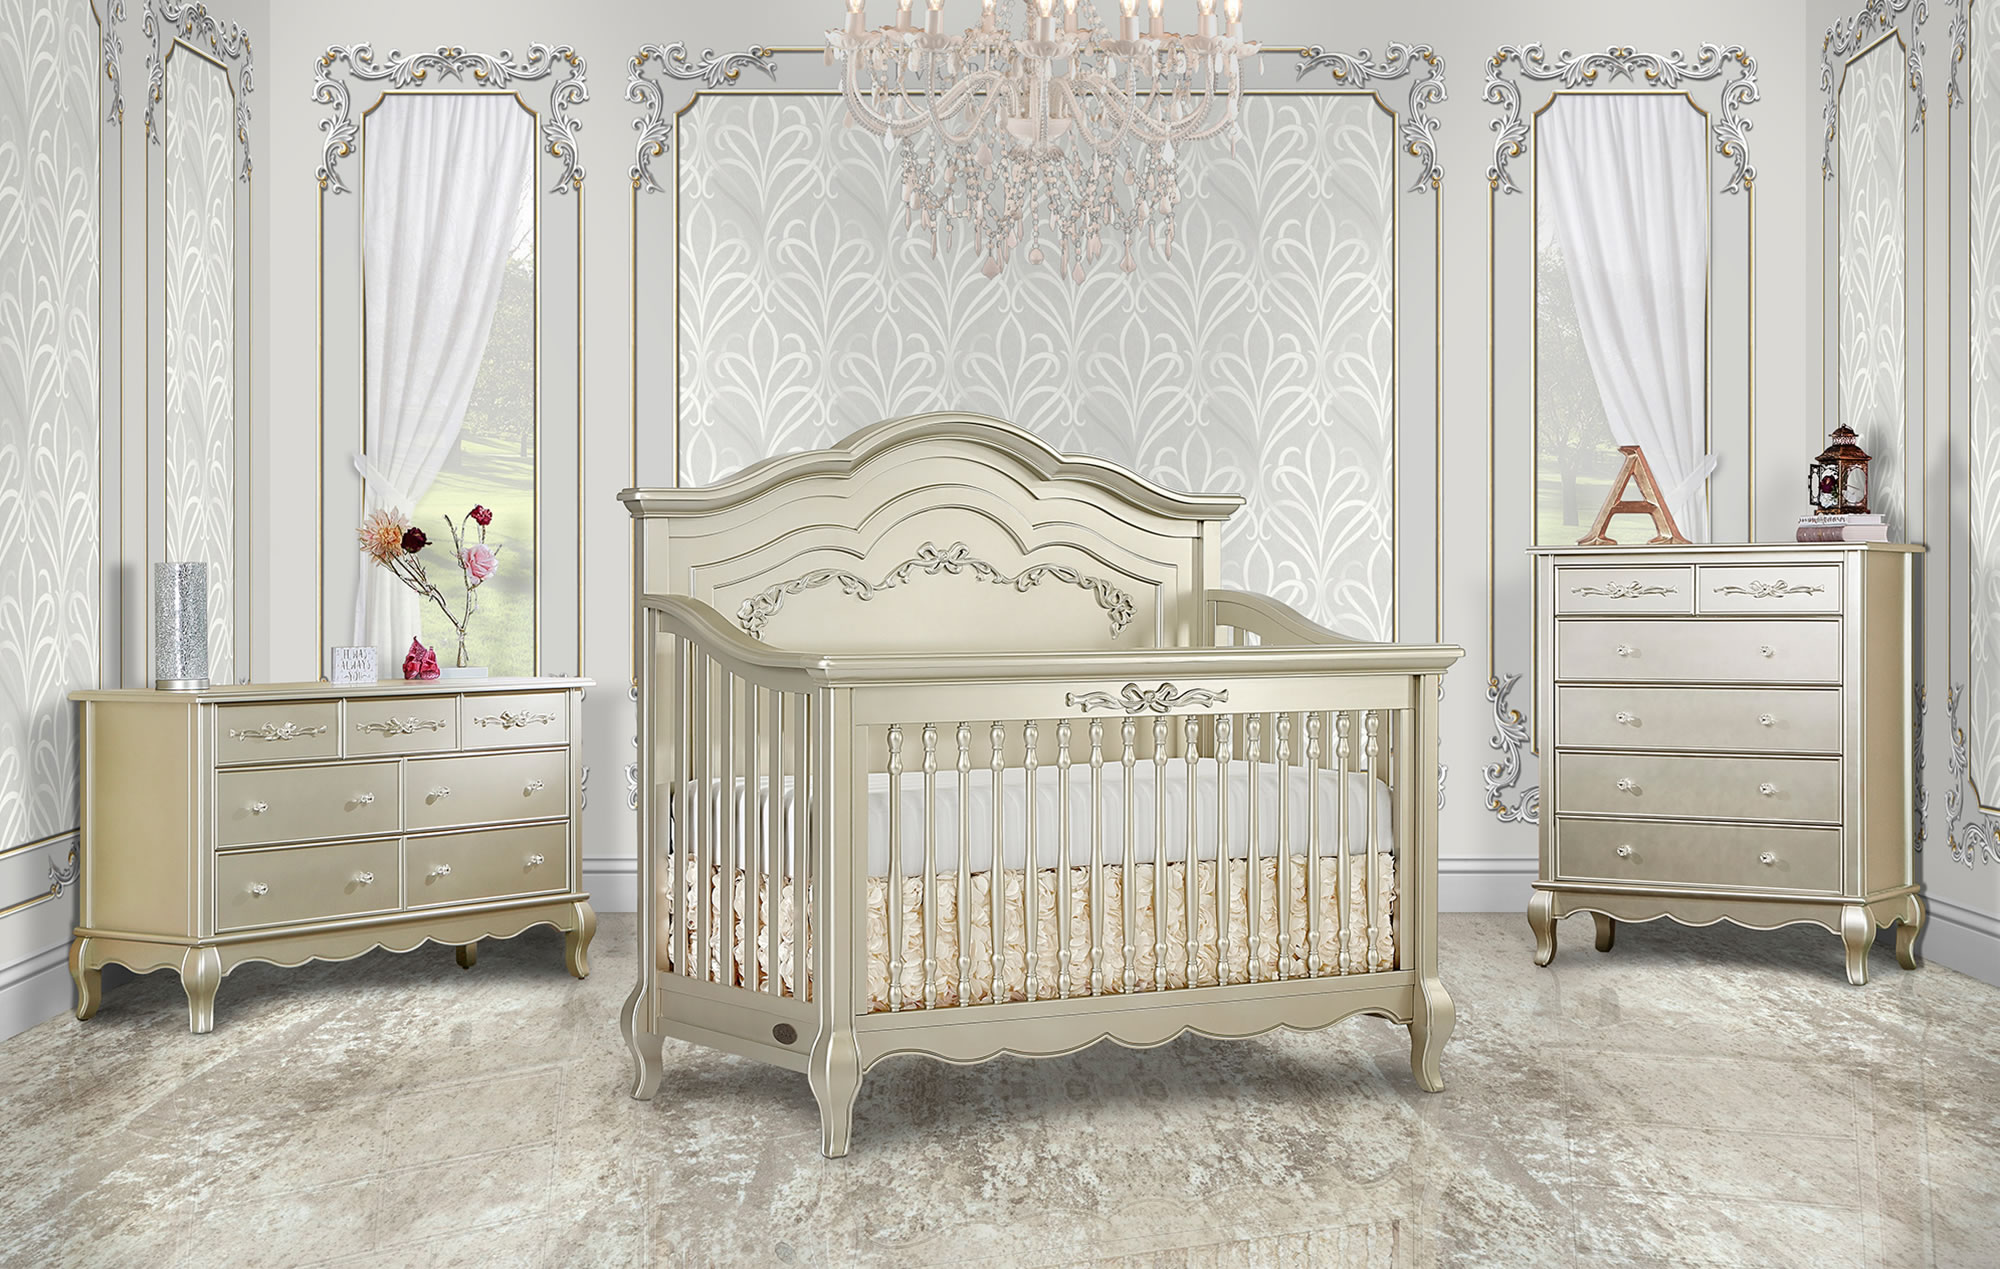 832-GD Aurora Convertible Crib RS1